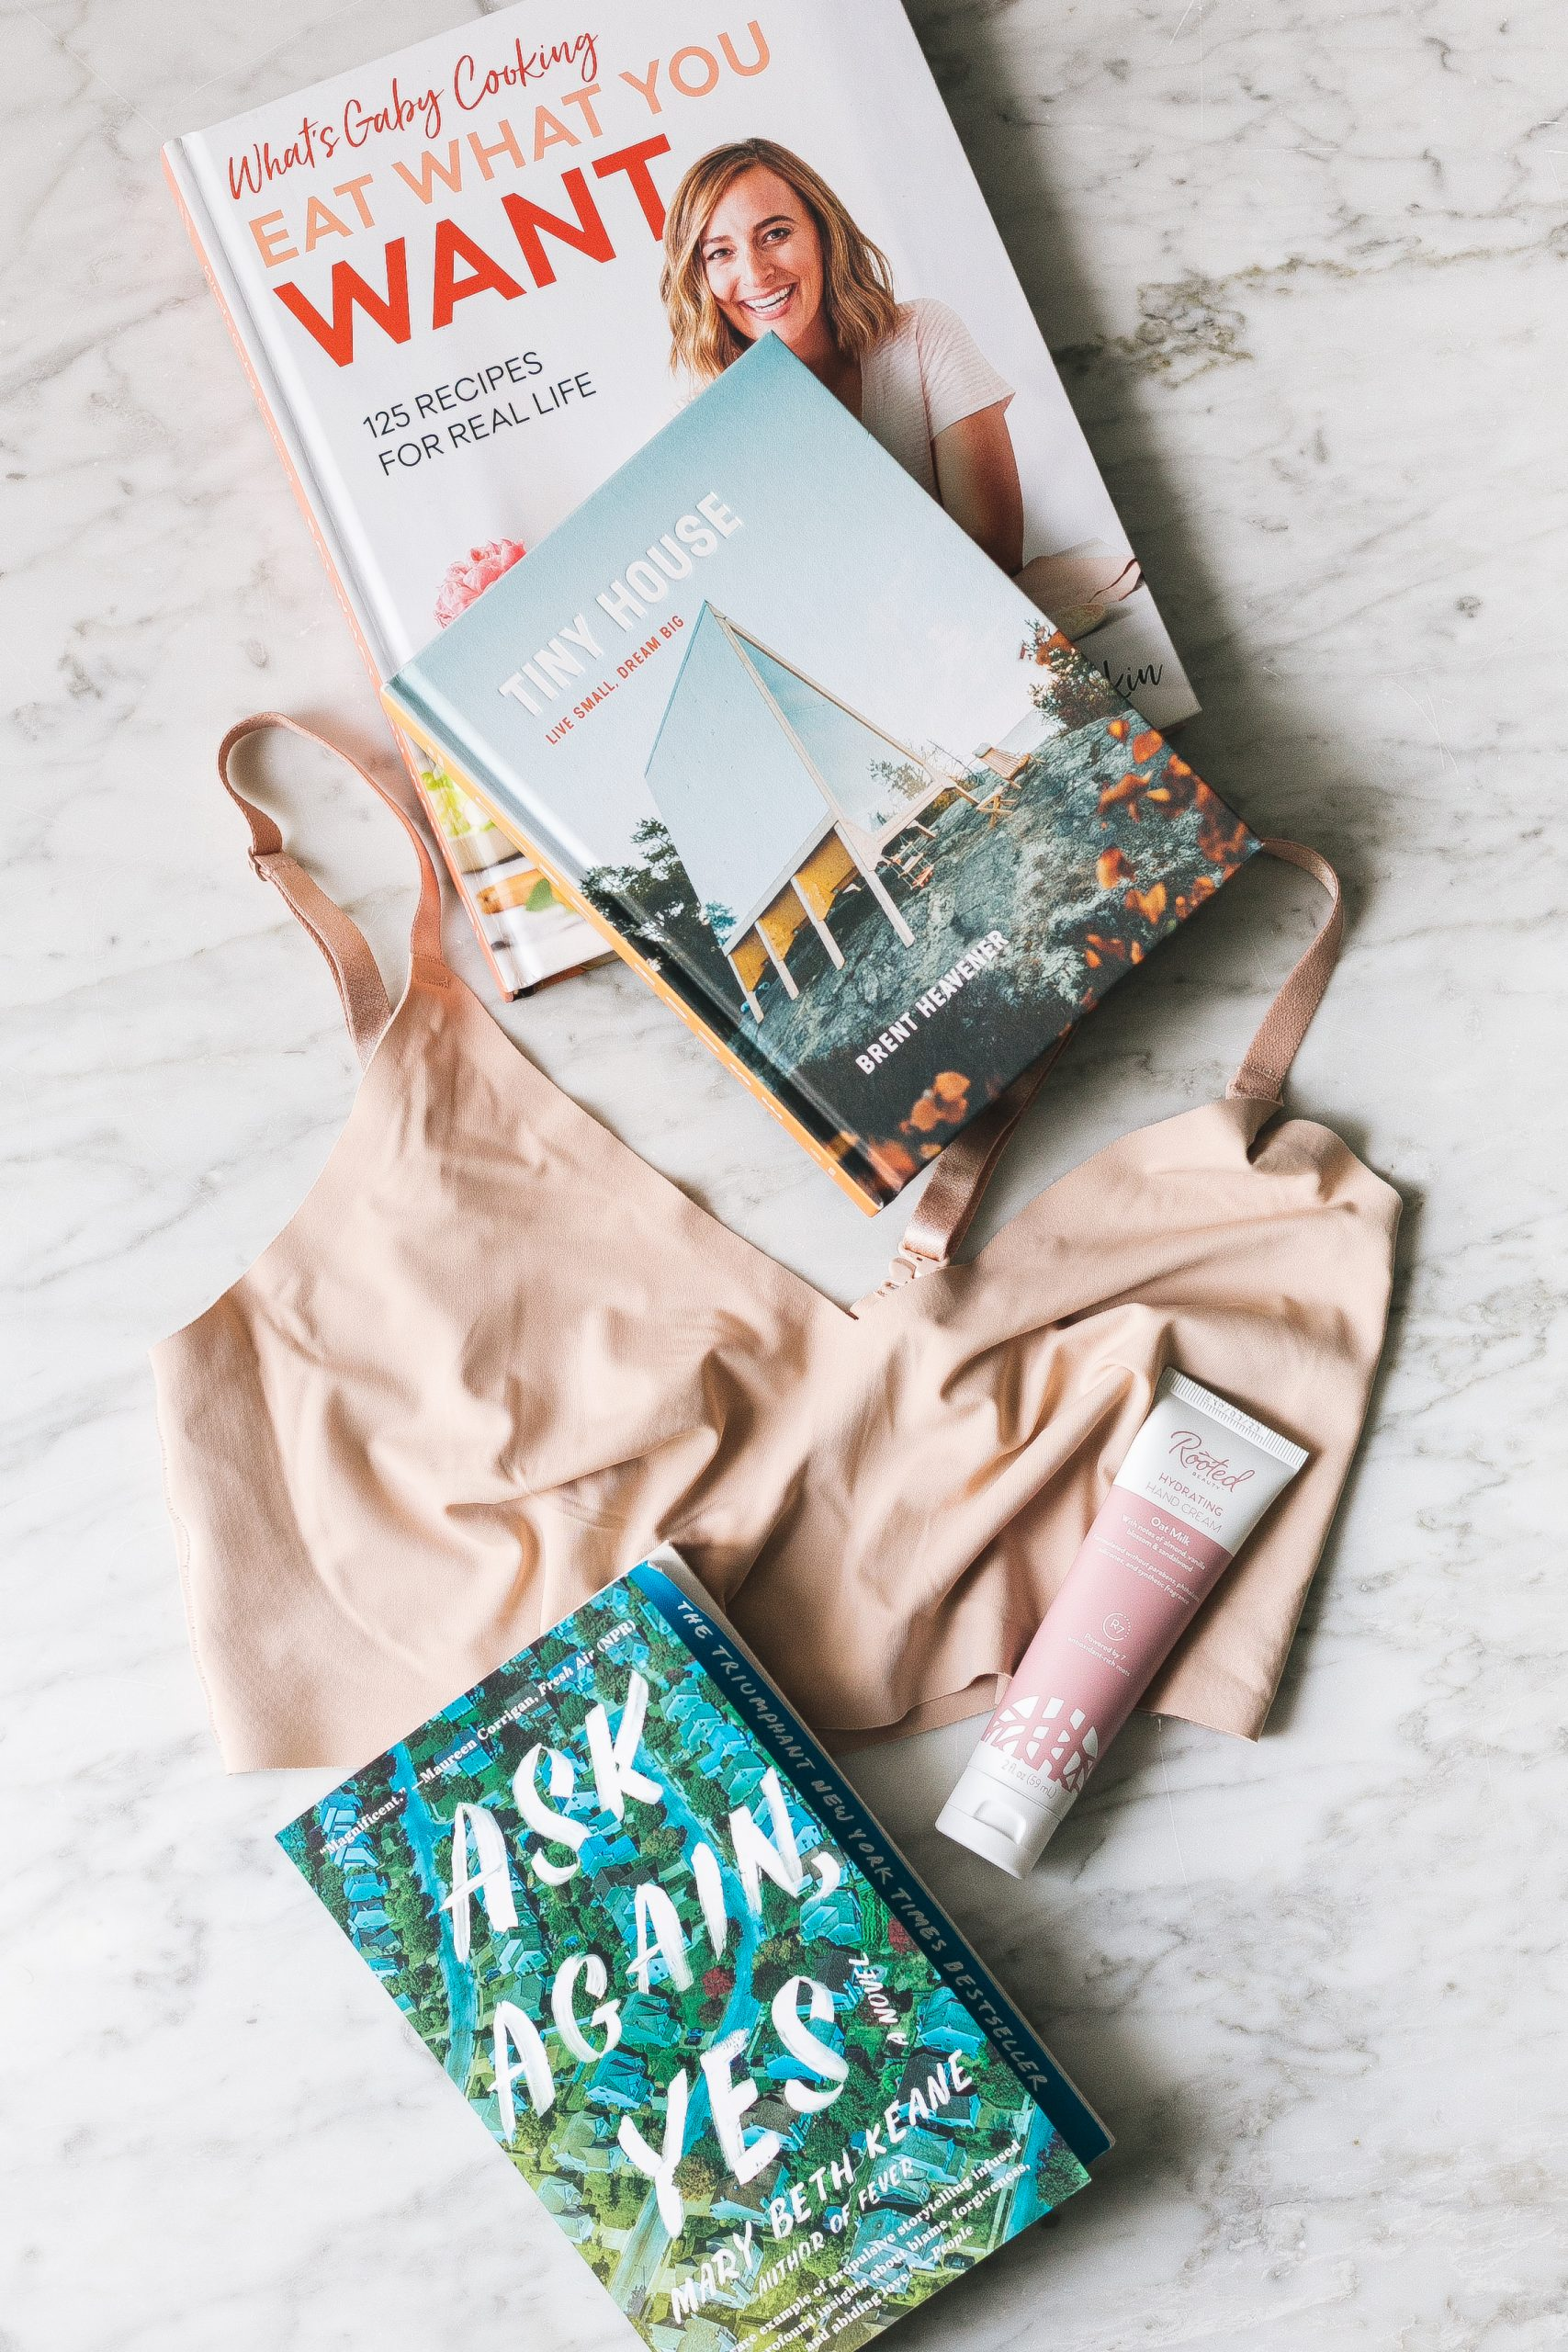 Joanna's Things of Note from May 2020 (including True&Co. bralette, Gaby Dalkin's new cookbook Eat What You Want, Tiny House book, a must-read novel & more) #thingsofnote #shopping #shoppingguide #musthaves #favoriteproducts